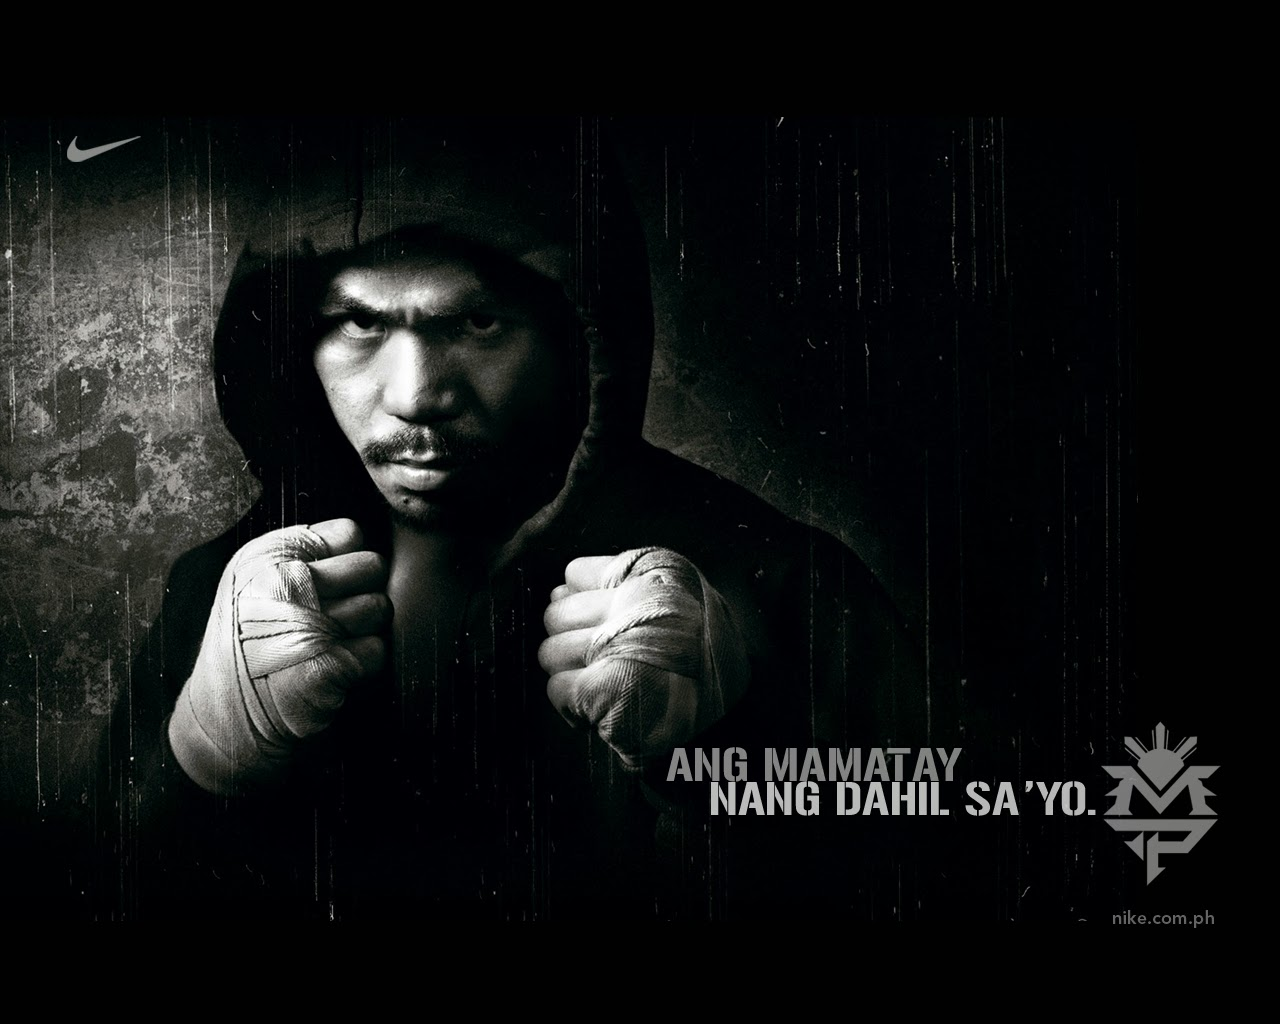 All Sports Players Manny Pacquiao Hd Wallpapers 2013